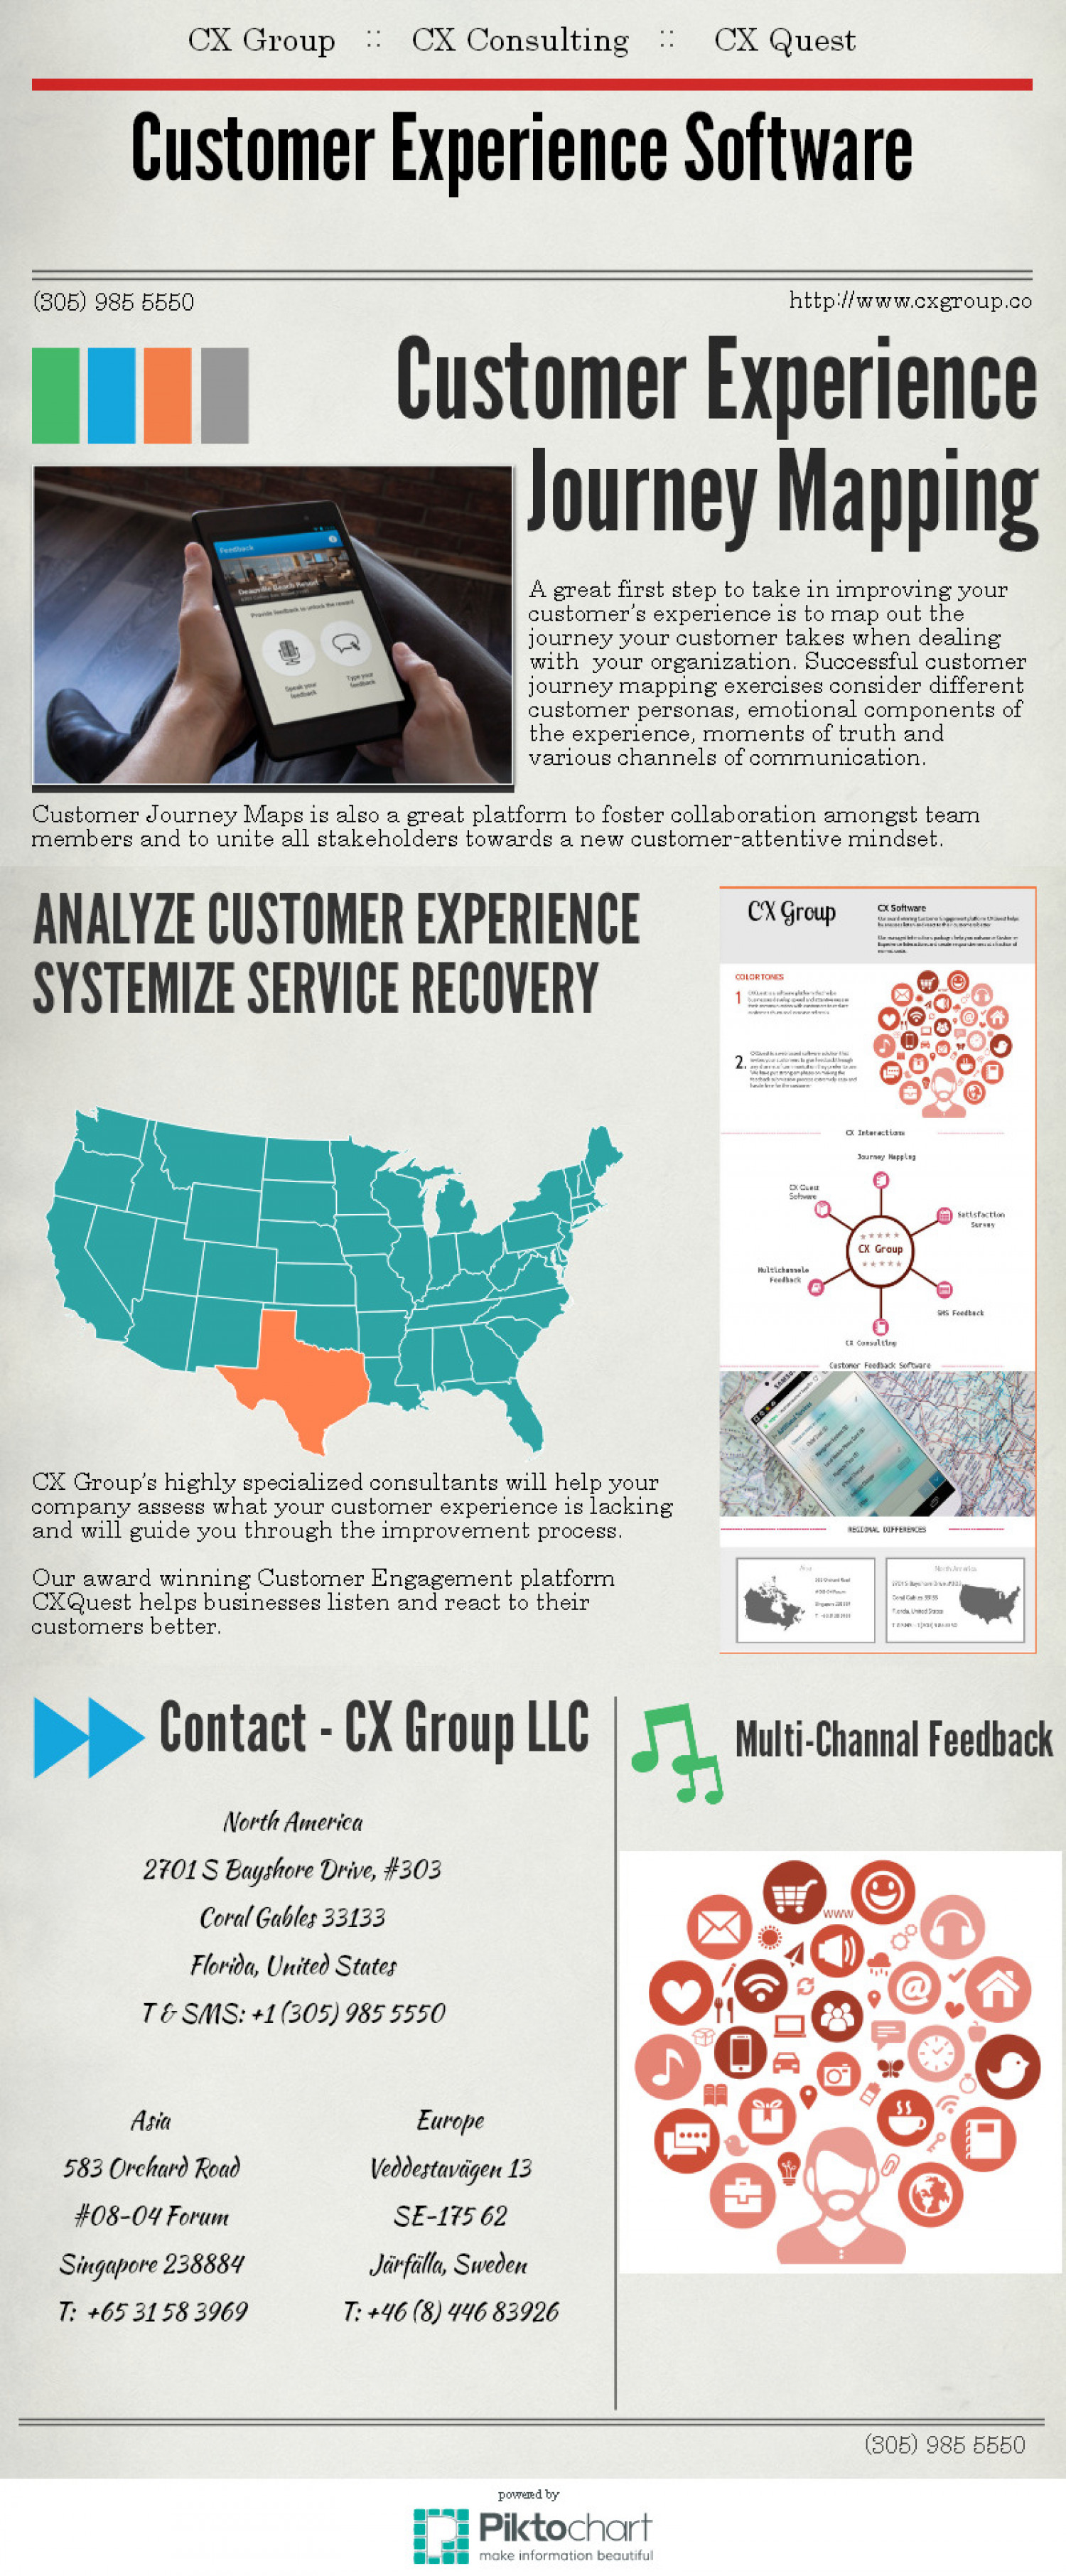 Customer Journey Mapping Survey Software Consulting Visually - Experience mapping software